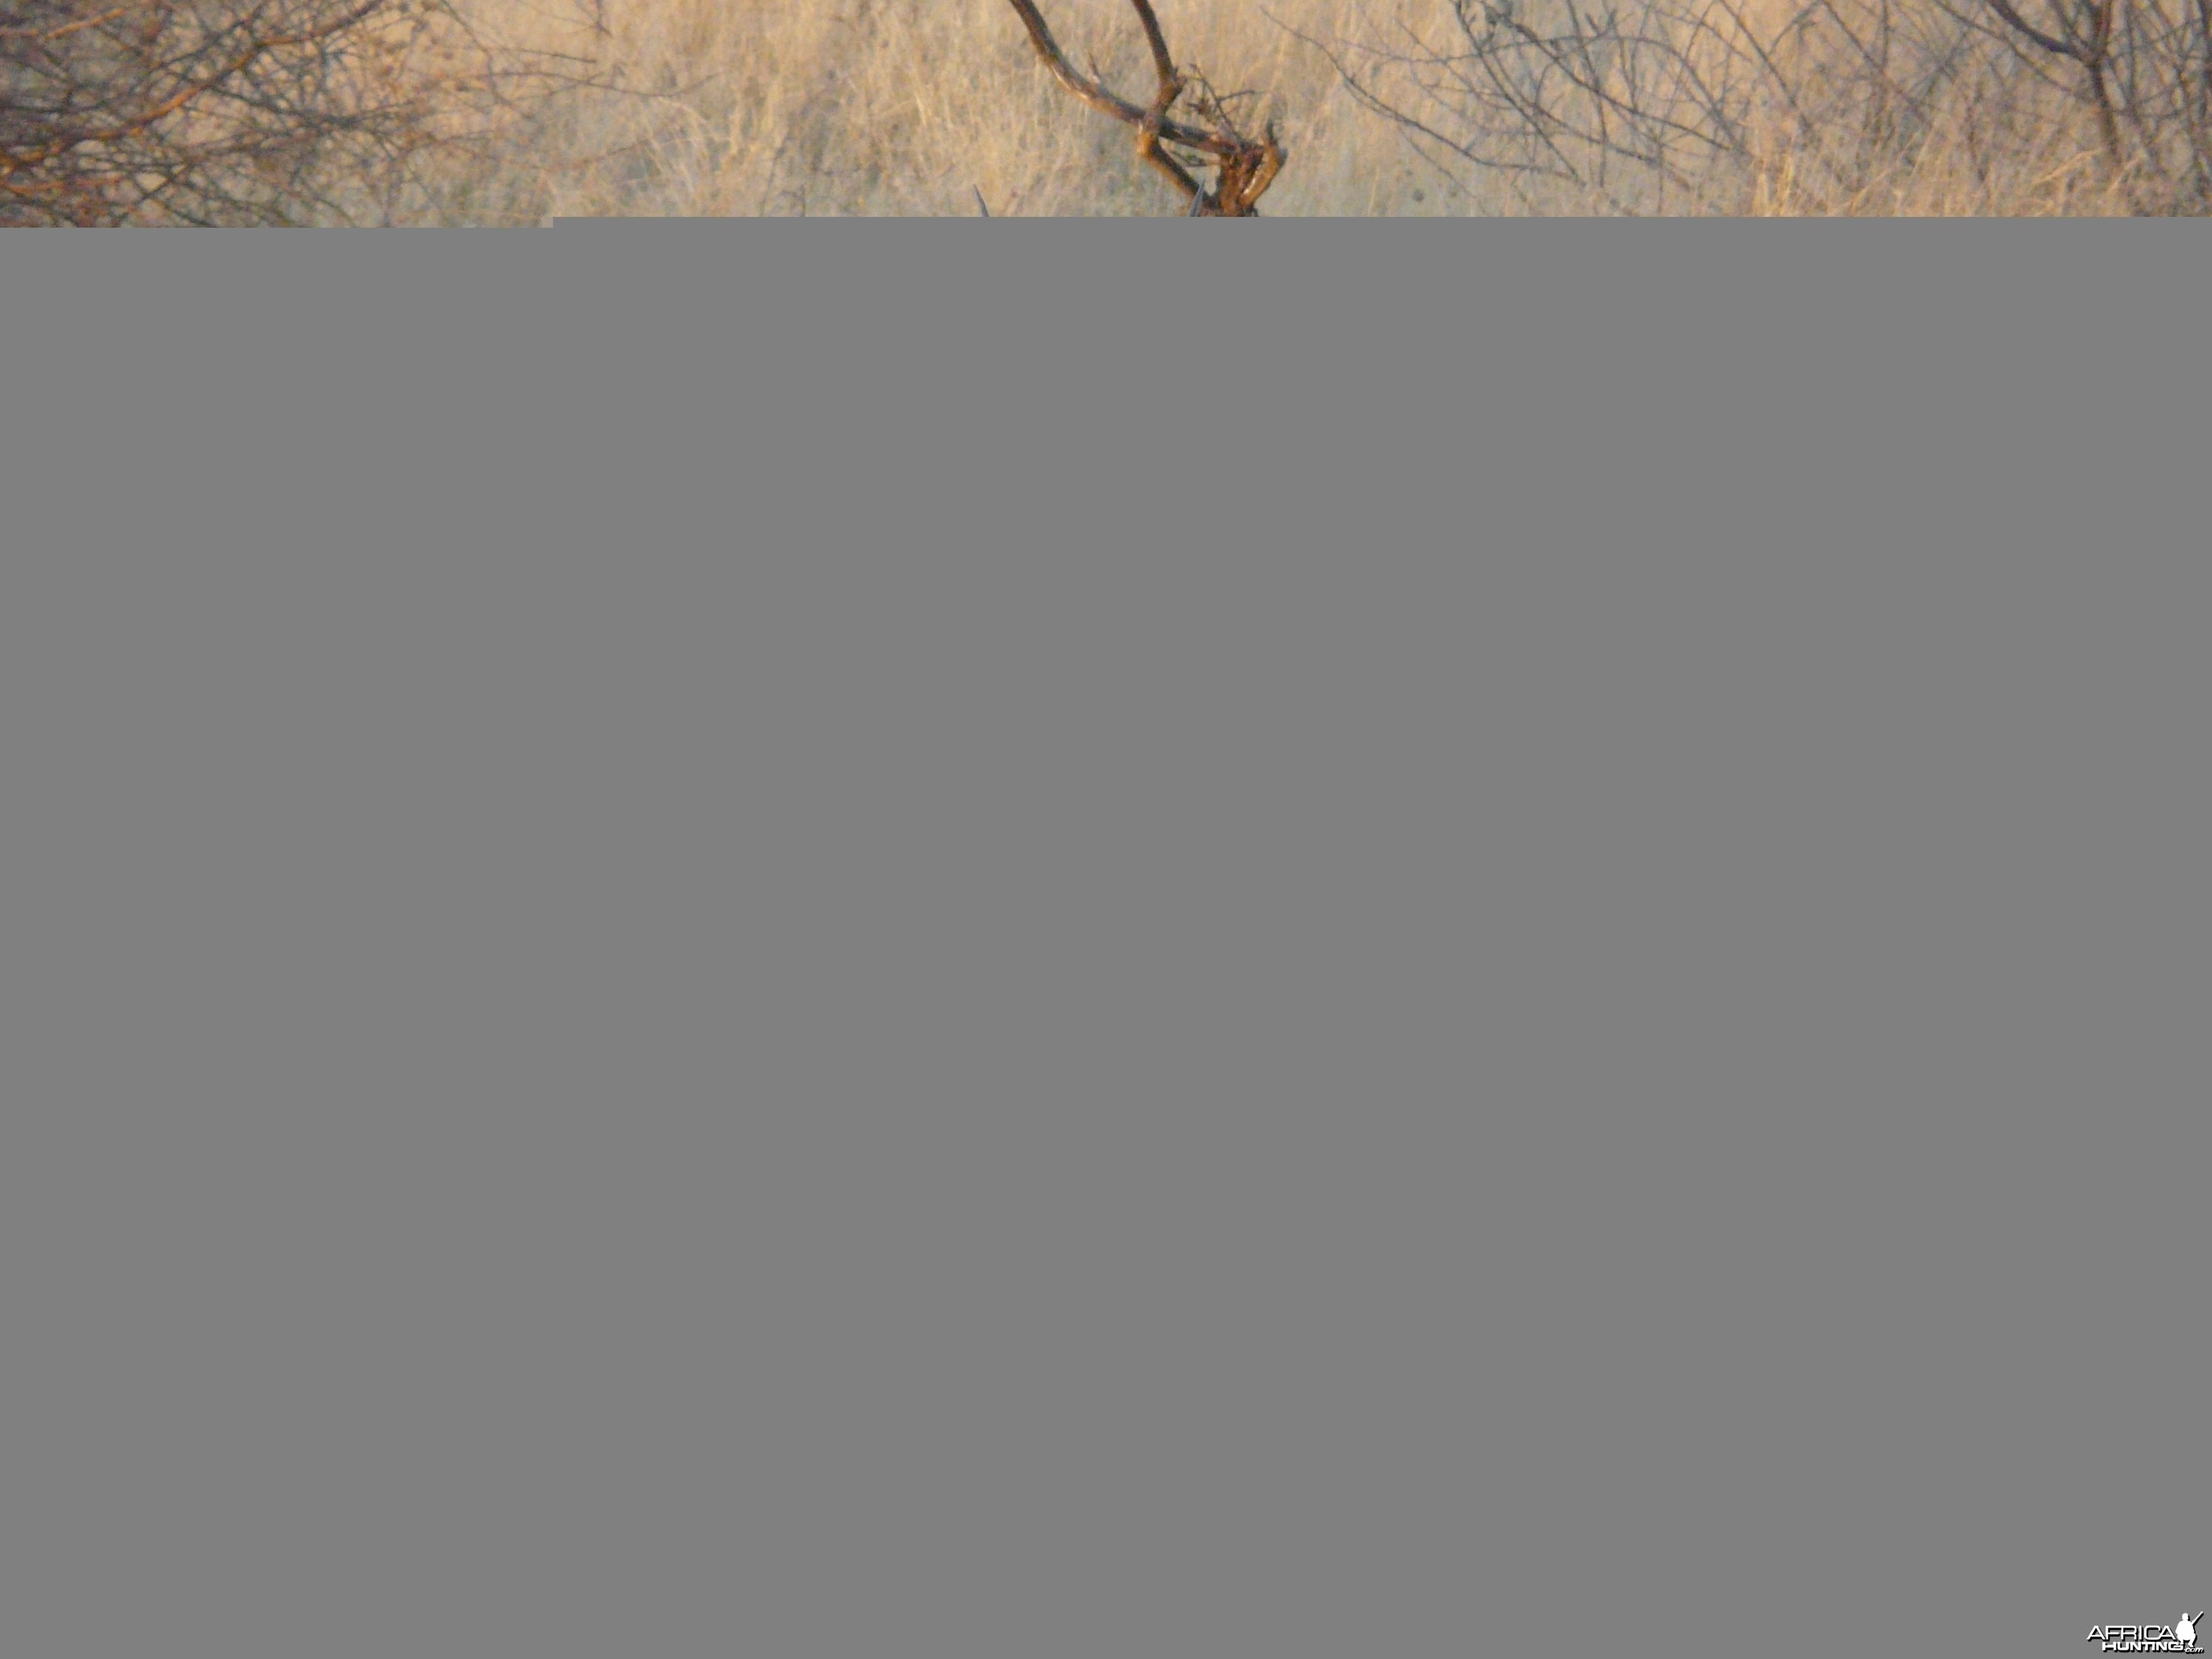 Oryx - Namibia - July 2011